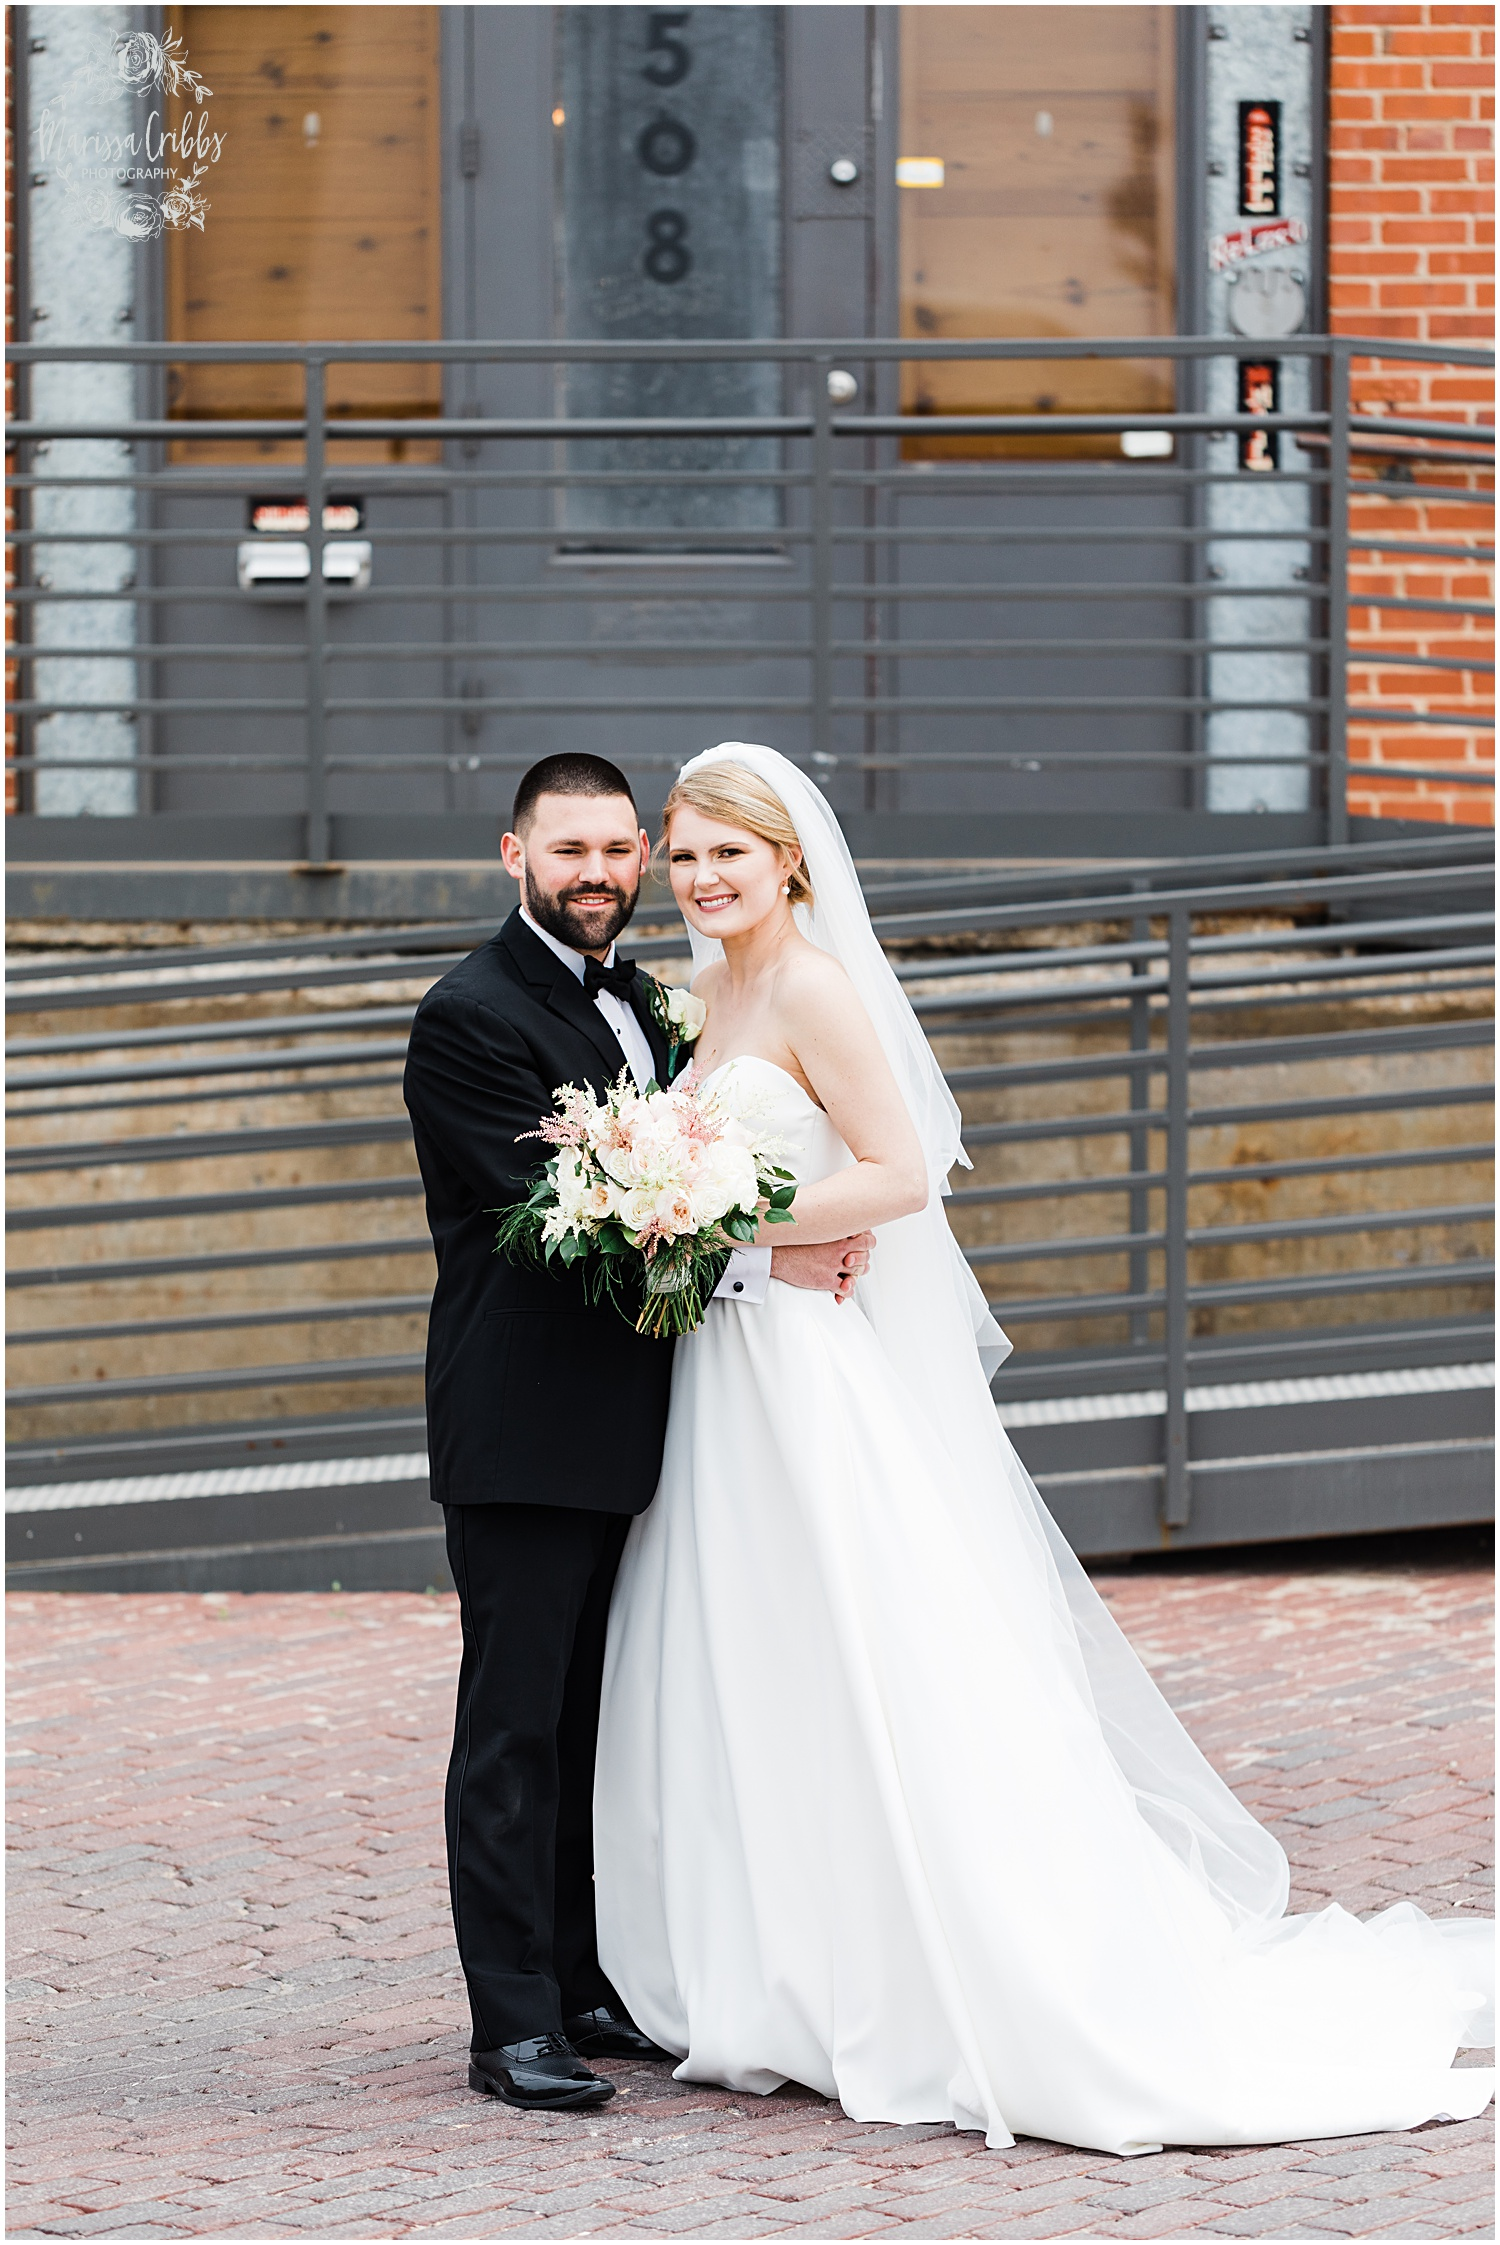 ABBY & CHARLIE WEDDING | THE HUDSON EVENT SPACE WEDDING | MARISSA CRIBBS PHOTOGRAPHY_7508.jpg